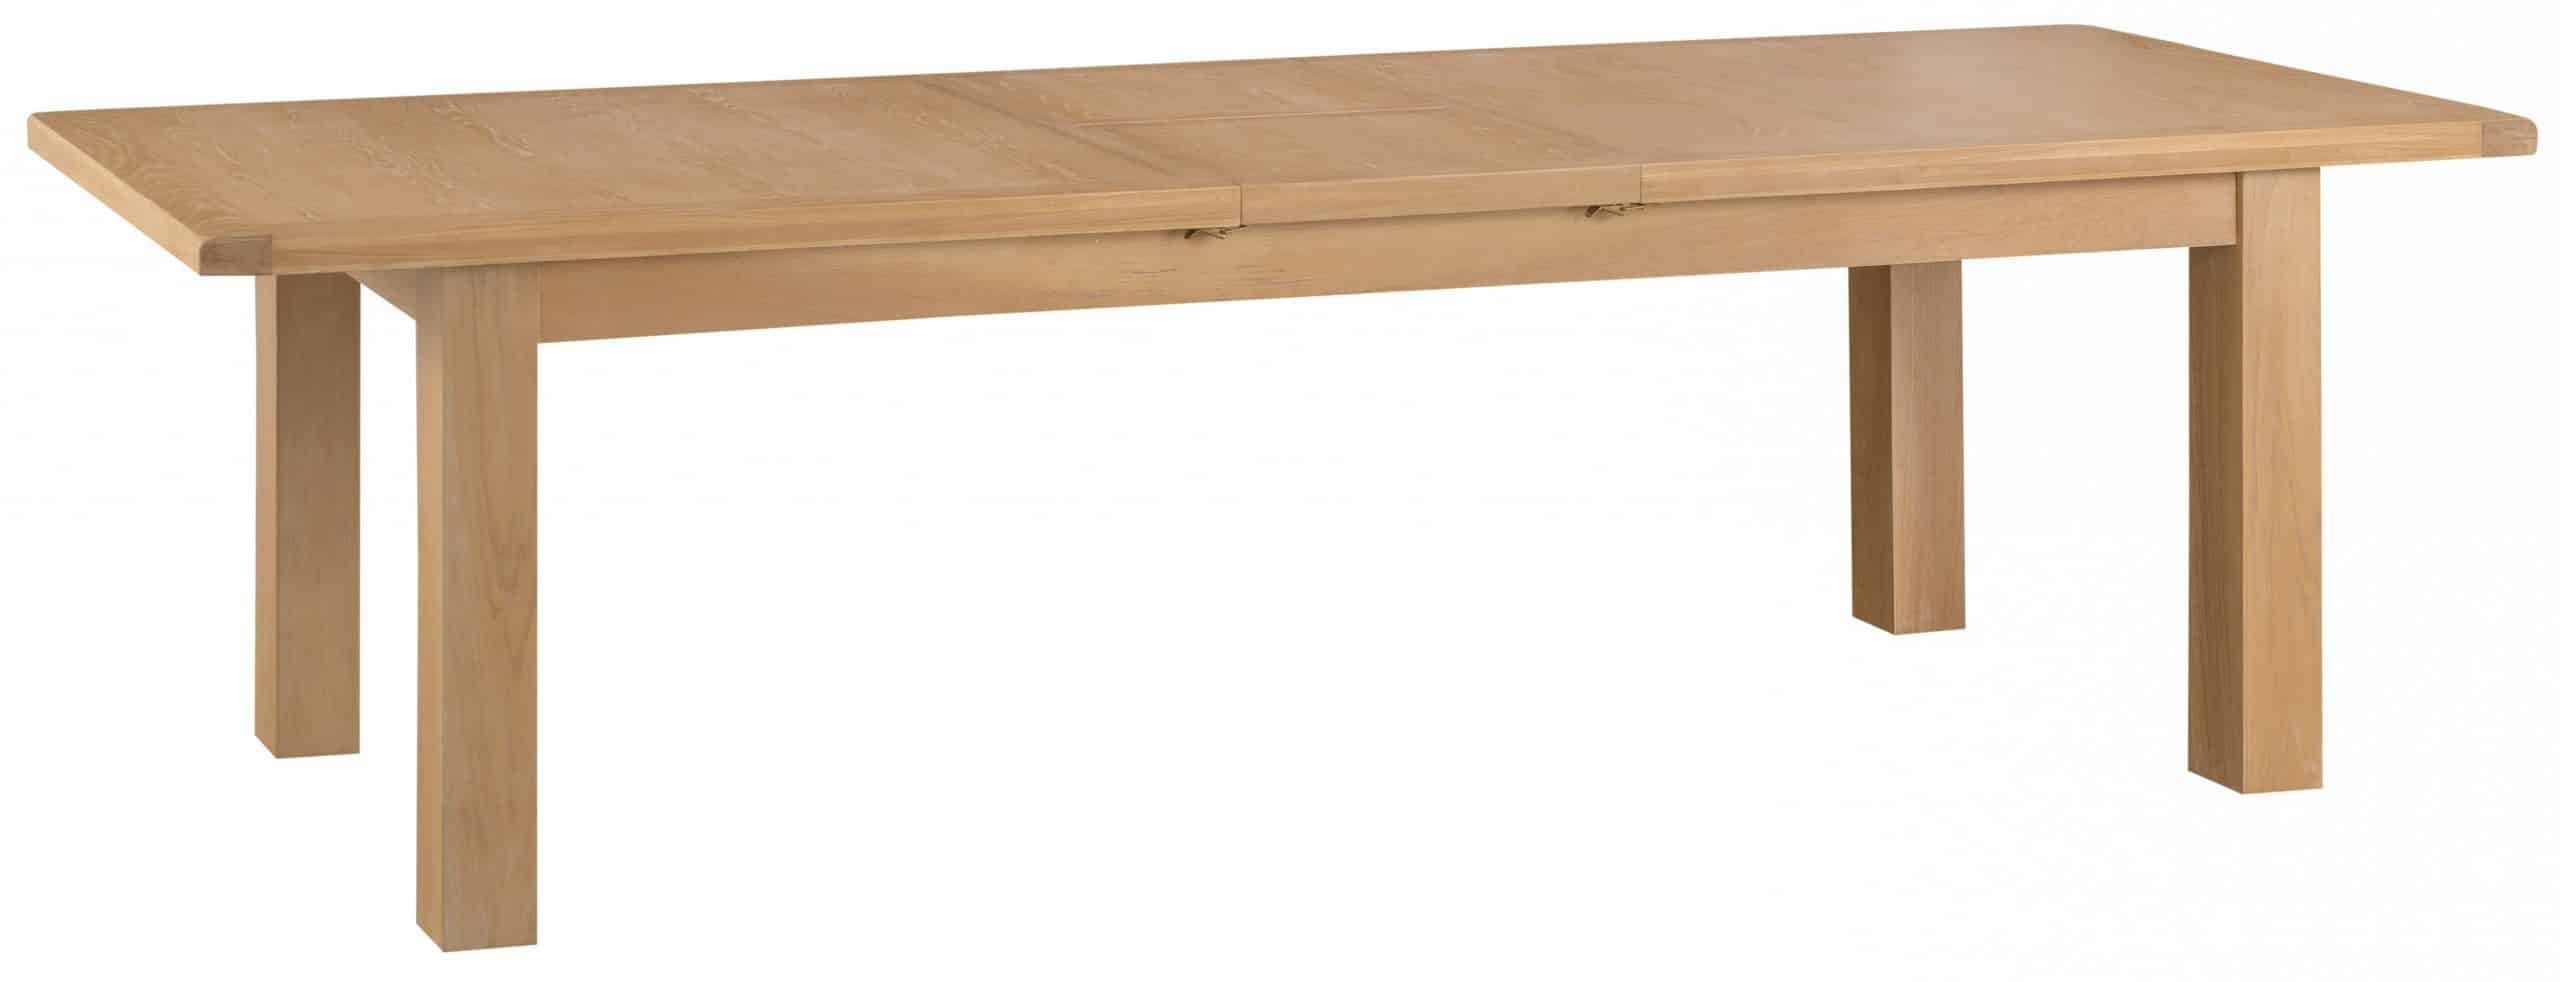 Banbury Solid Chunky Wood Rustic Oak Extra Large Extending Dining Table